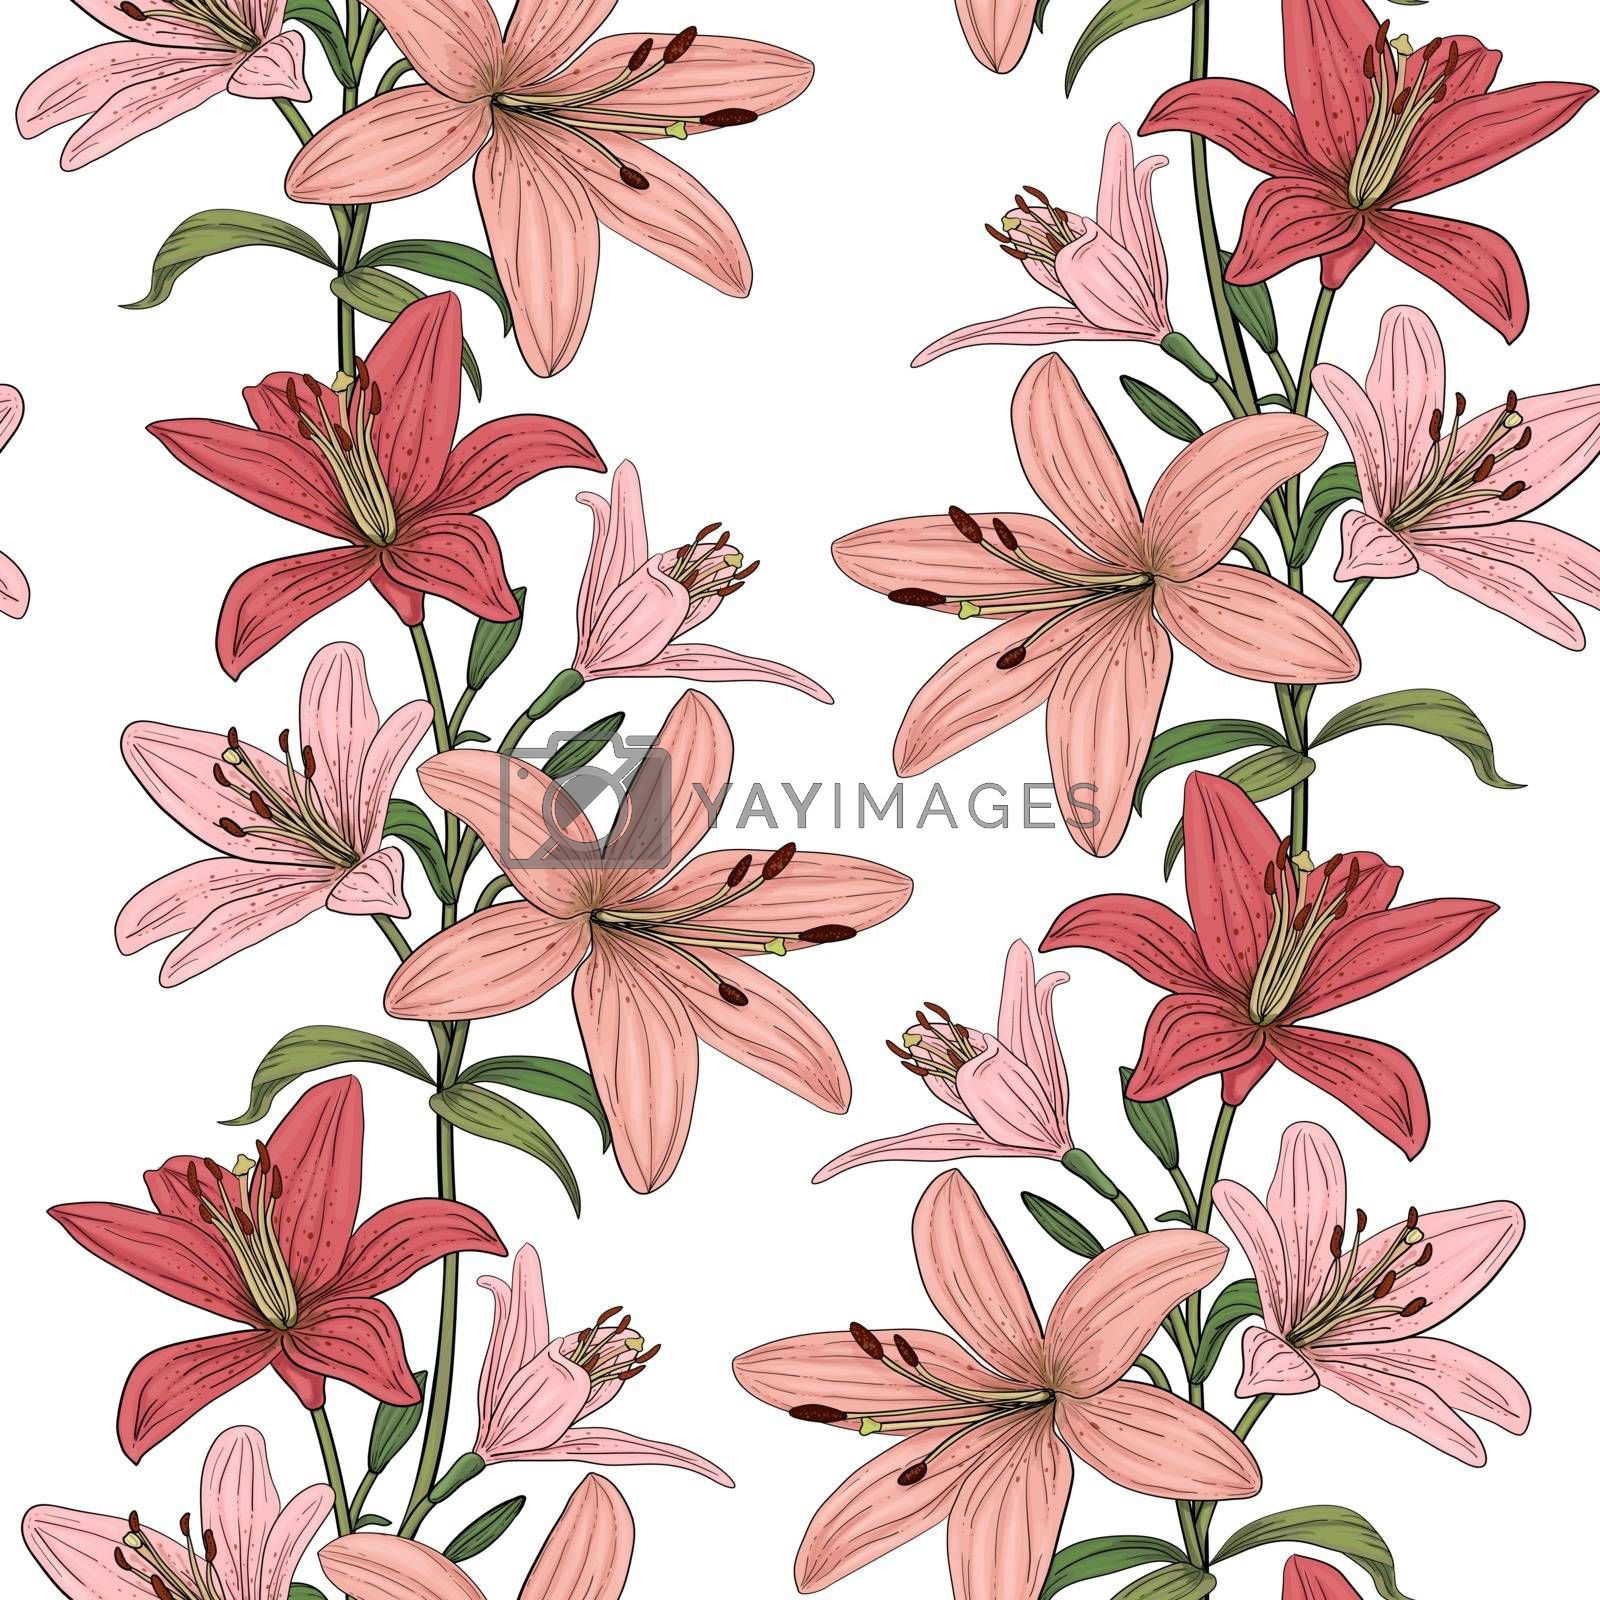 Seamless vector pattern with colorful lilies flower pink and red lily on white background. Blooming floral background for wedding invitations and greeting cards. Flower of Lilium candidum Madonna lily